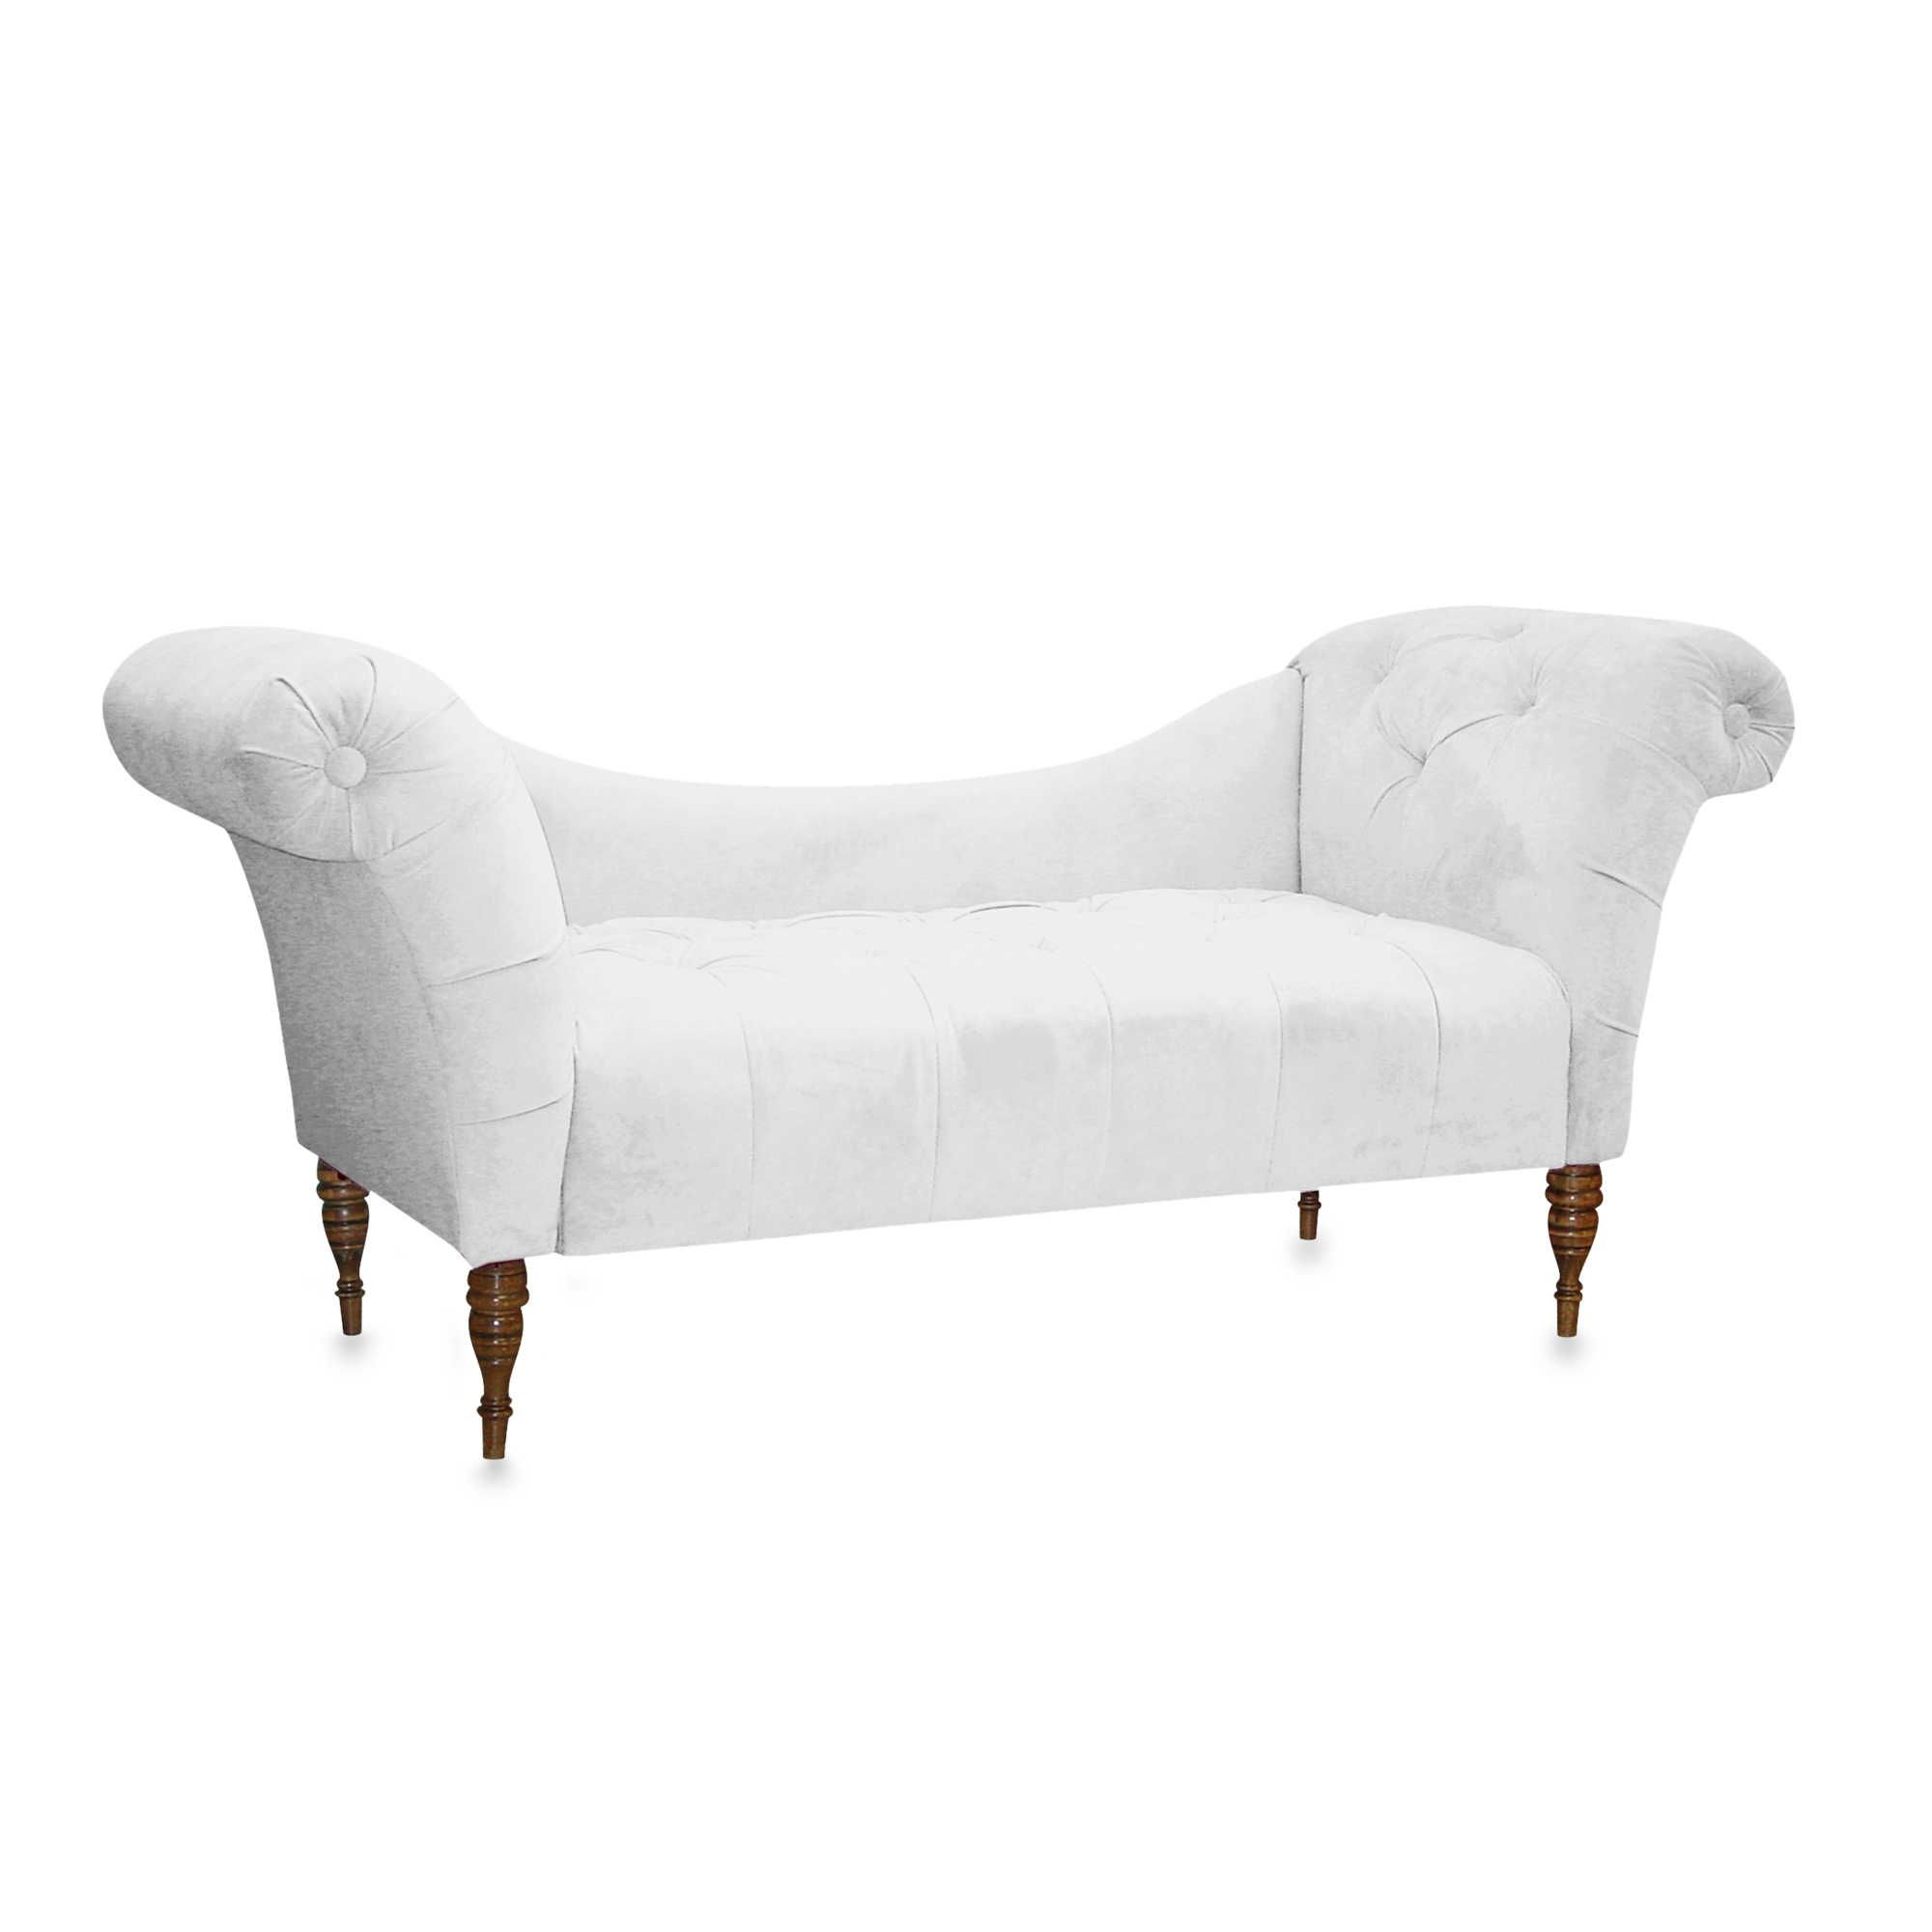 Skyline Furniture Tufted Chaise Lounge in Velvet